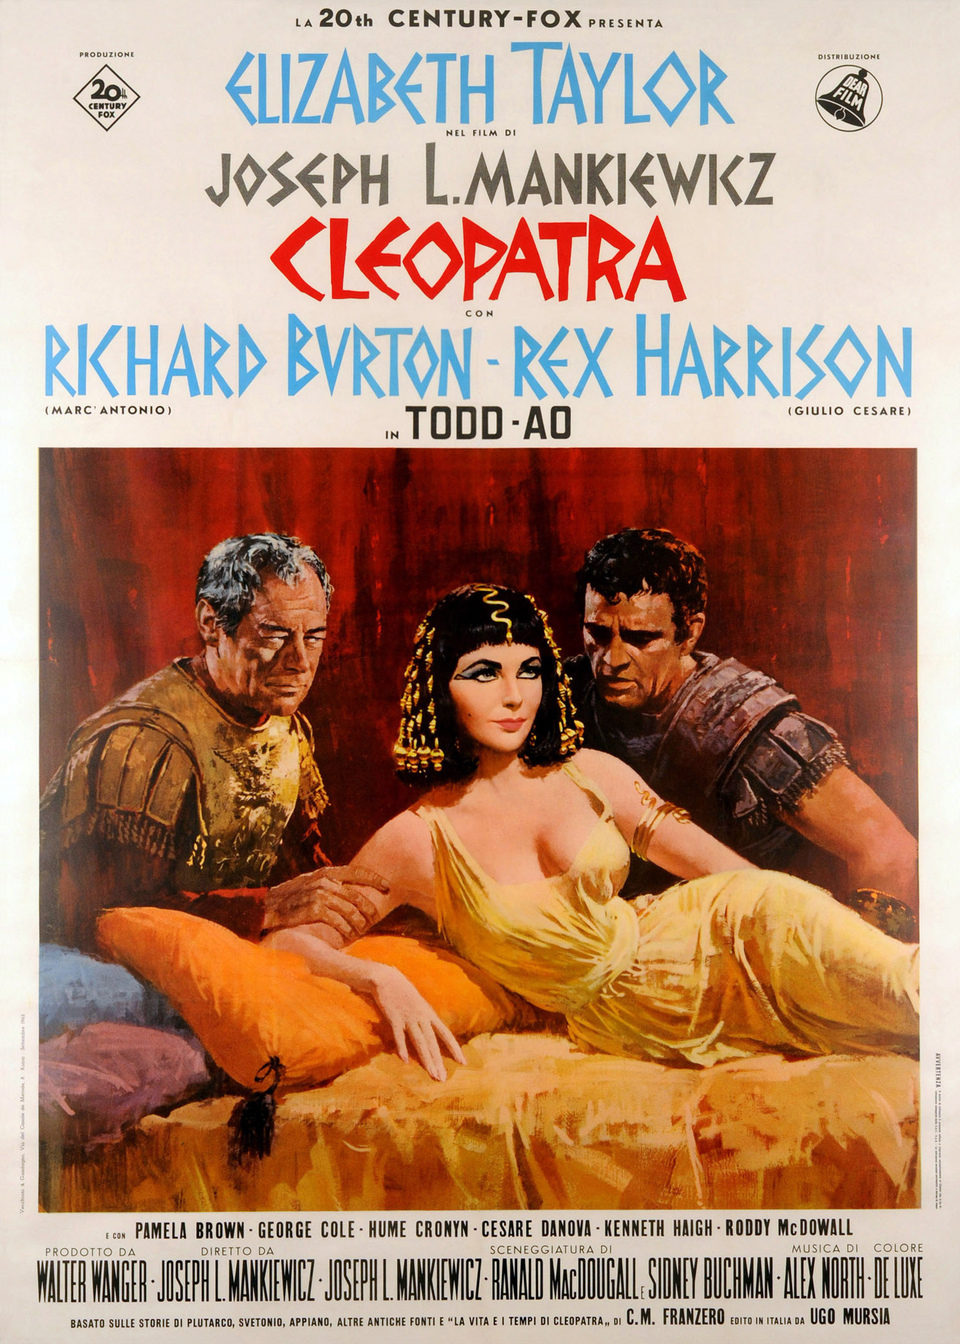 EEUU poster for Cleopatra